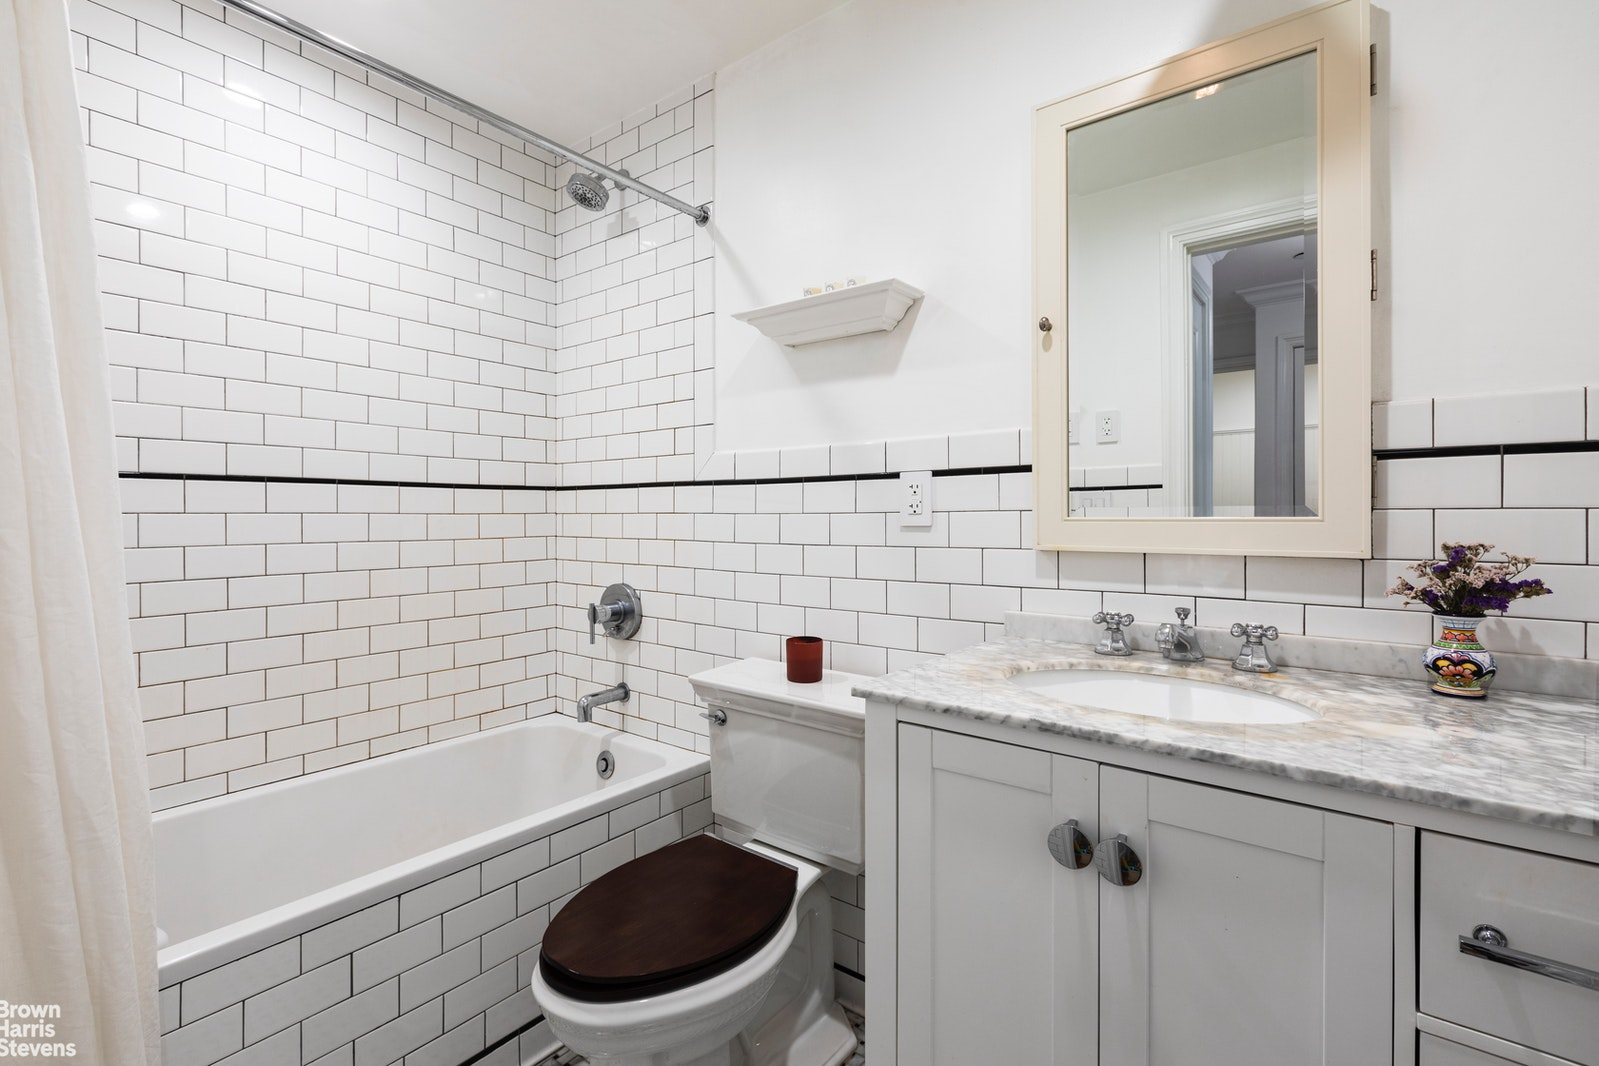 110 Putnam Avenue 2, Bedford Stuyvesant, Brooklyn, NY, 11238, $1,050,000, Property For Sale, Halstead Real Estate, Photo 7